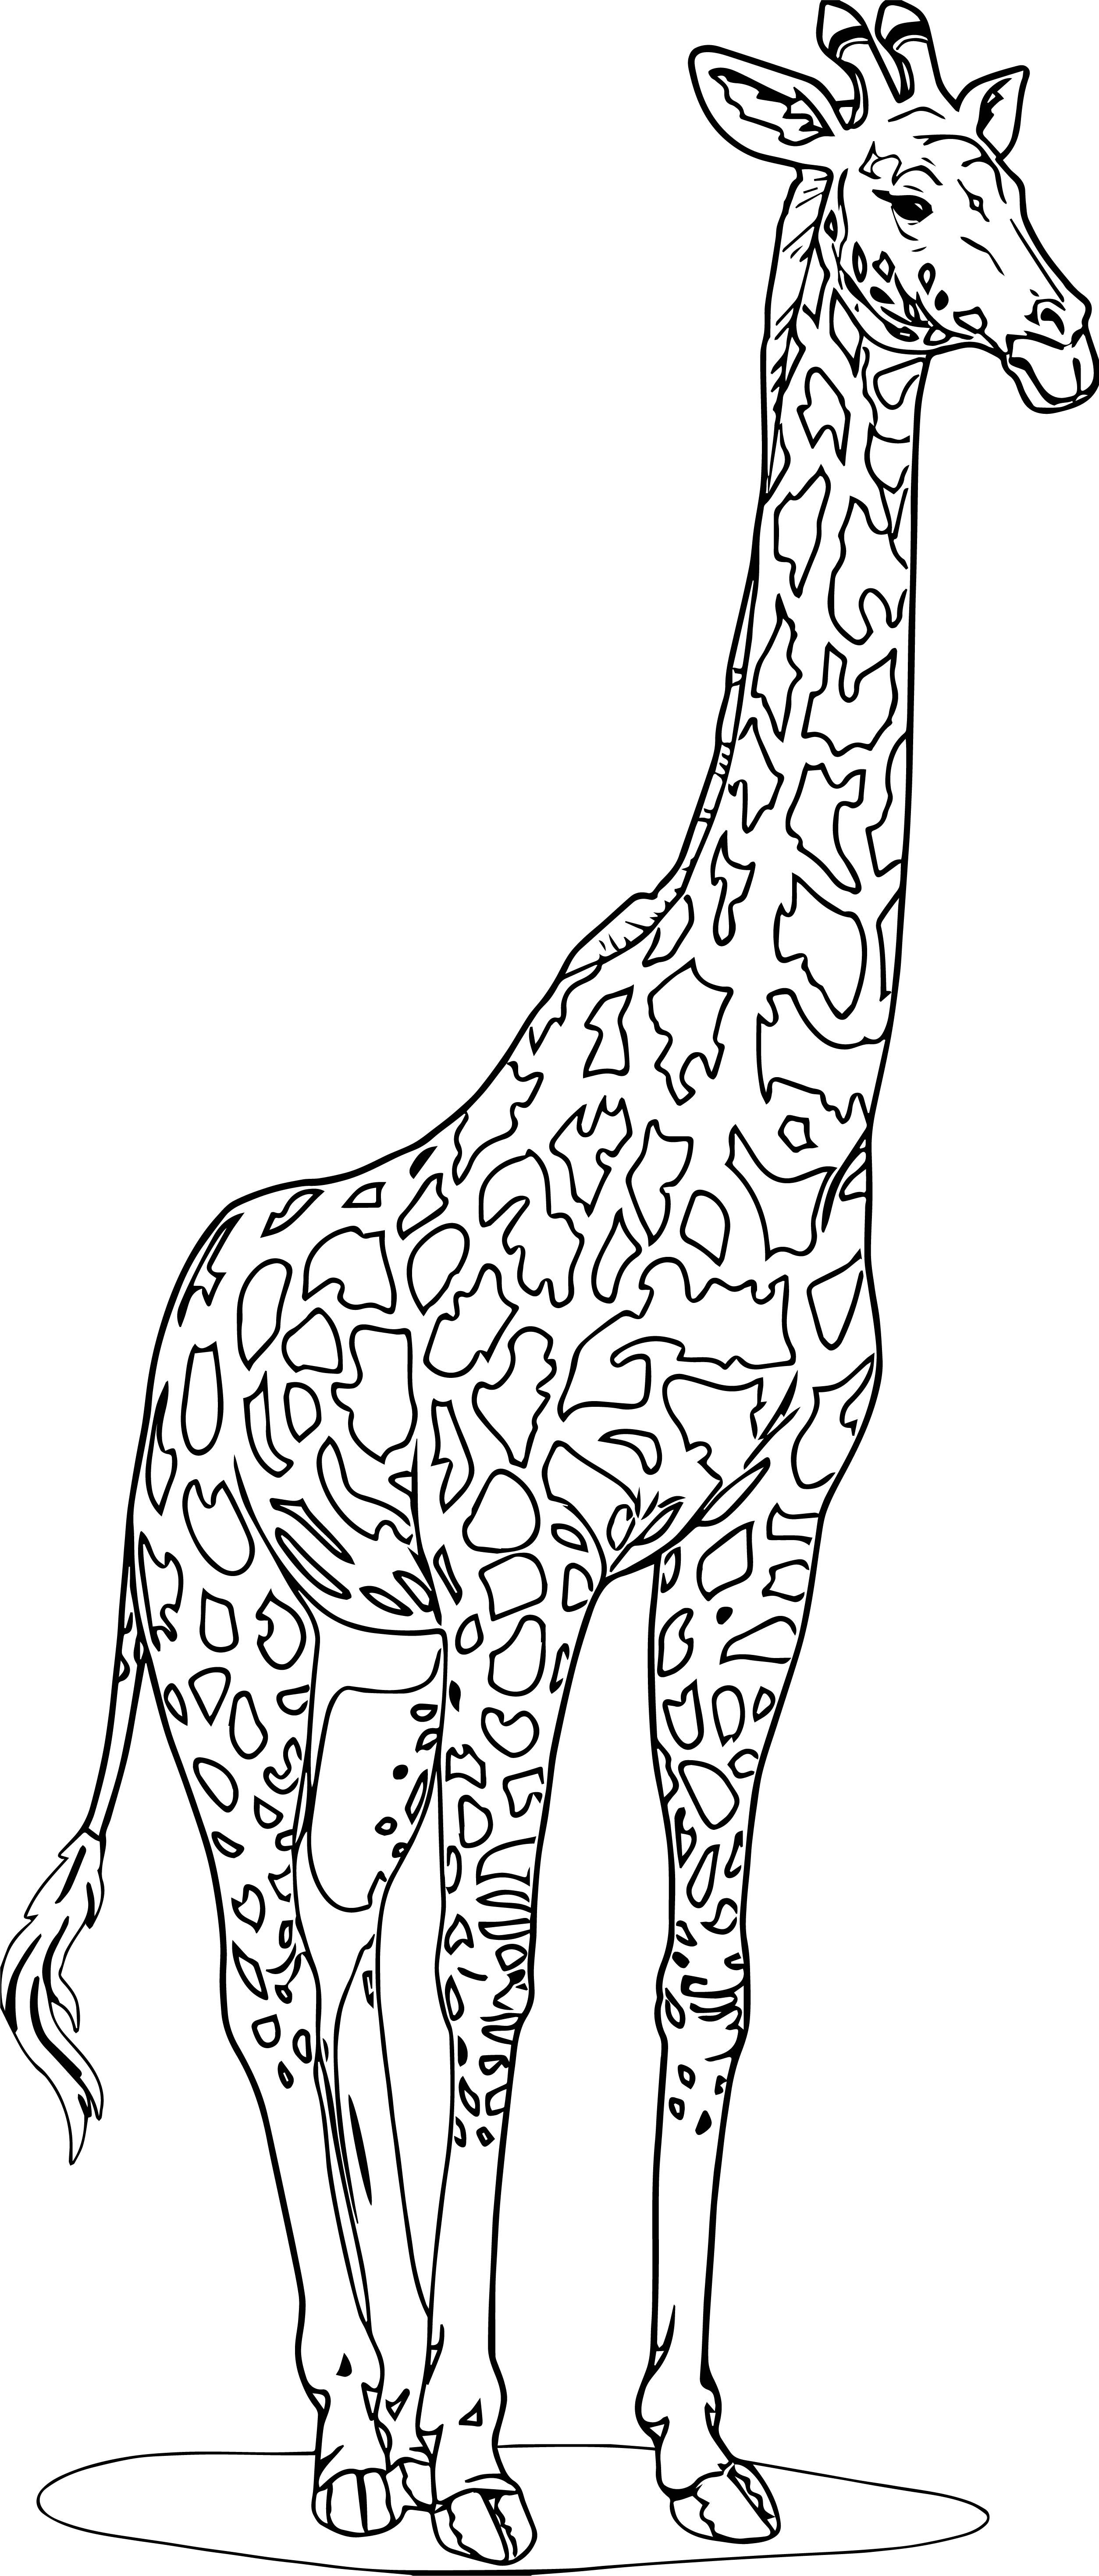 Nice Realistic Beautiful Giraffe Coloring Page Animal Coloring Pages Giraffe Coloring Pages Horse Coloring Pages